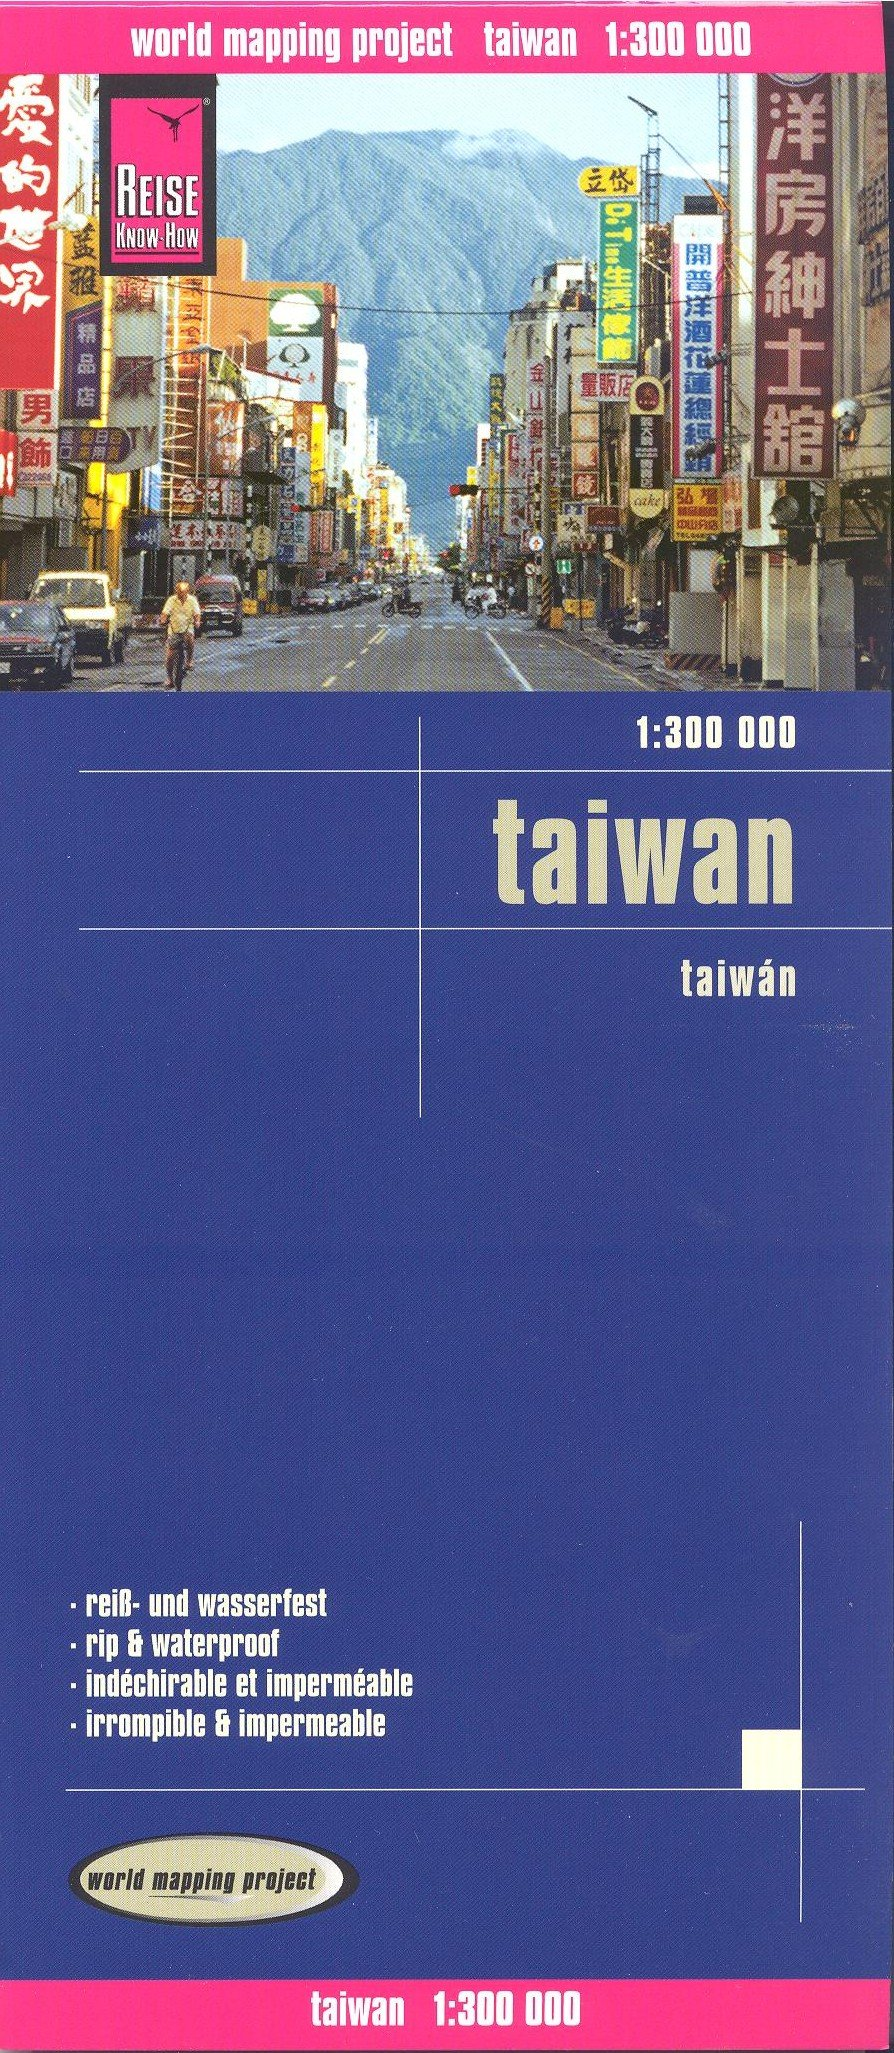 Taiwan 1:300,000 Travel Map, waterproof, GPS-compatible, REISE pdf